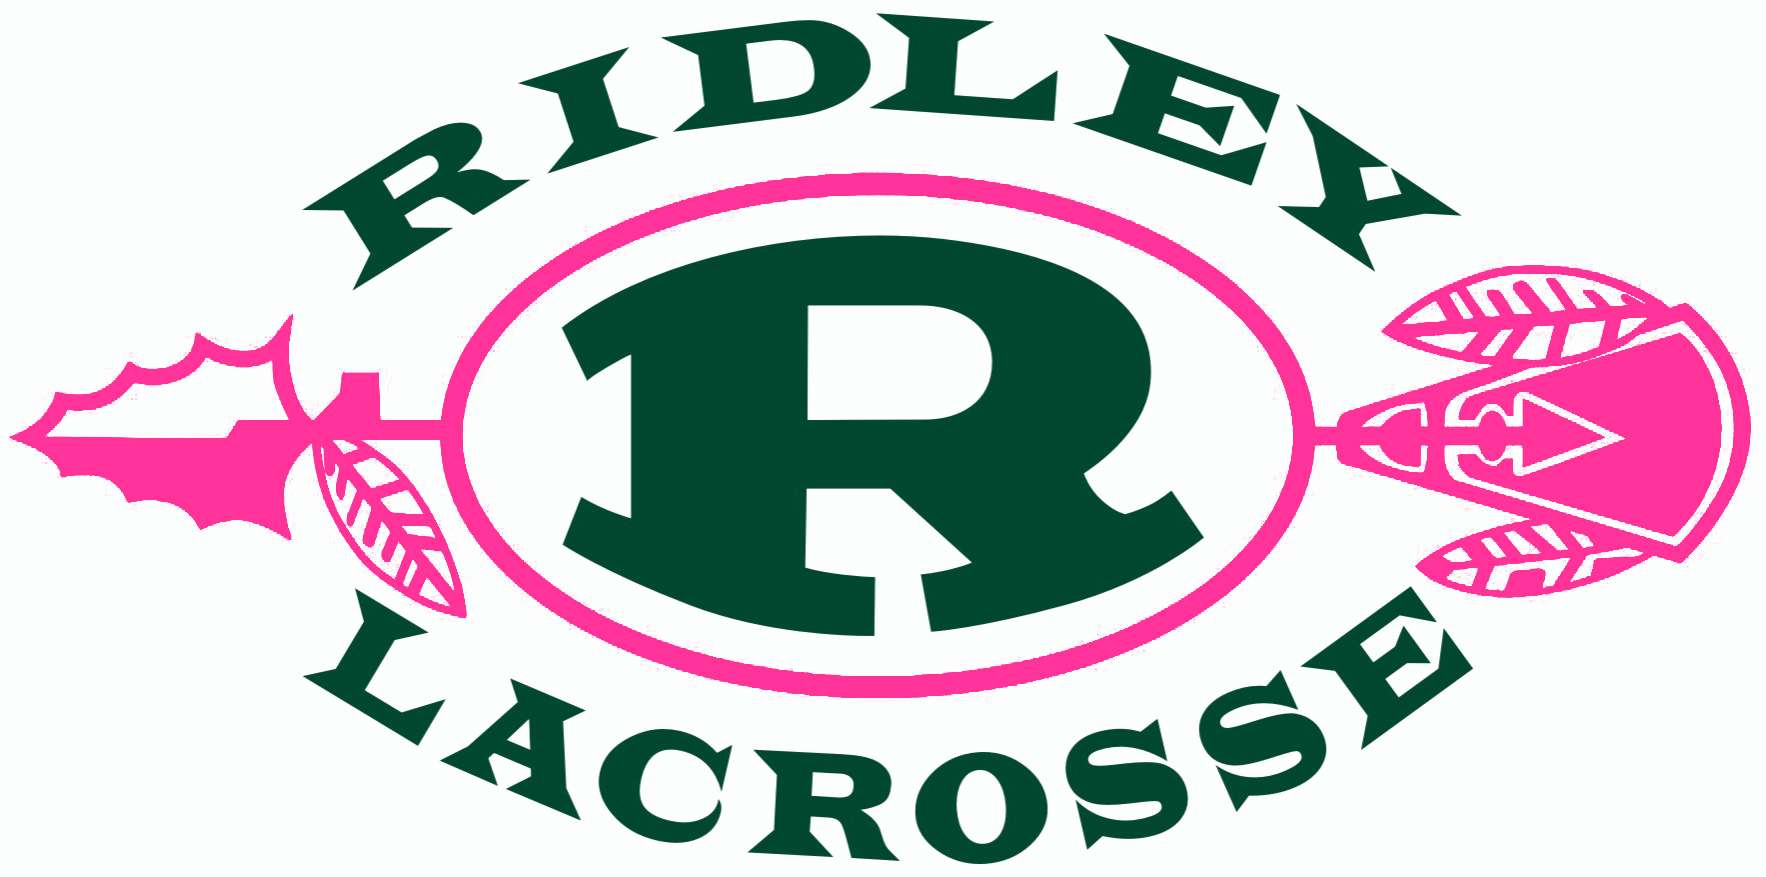 Girls Lax - White Back - Letters